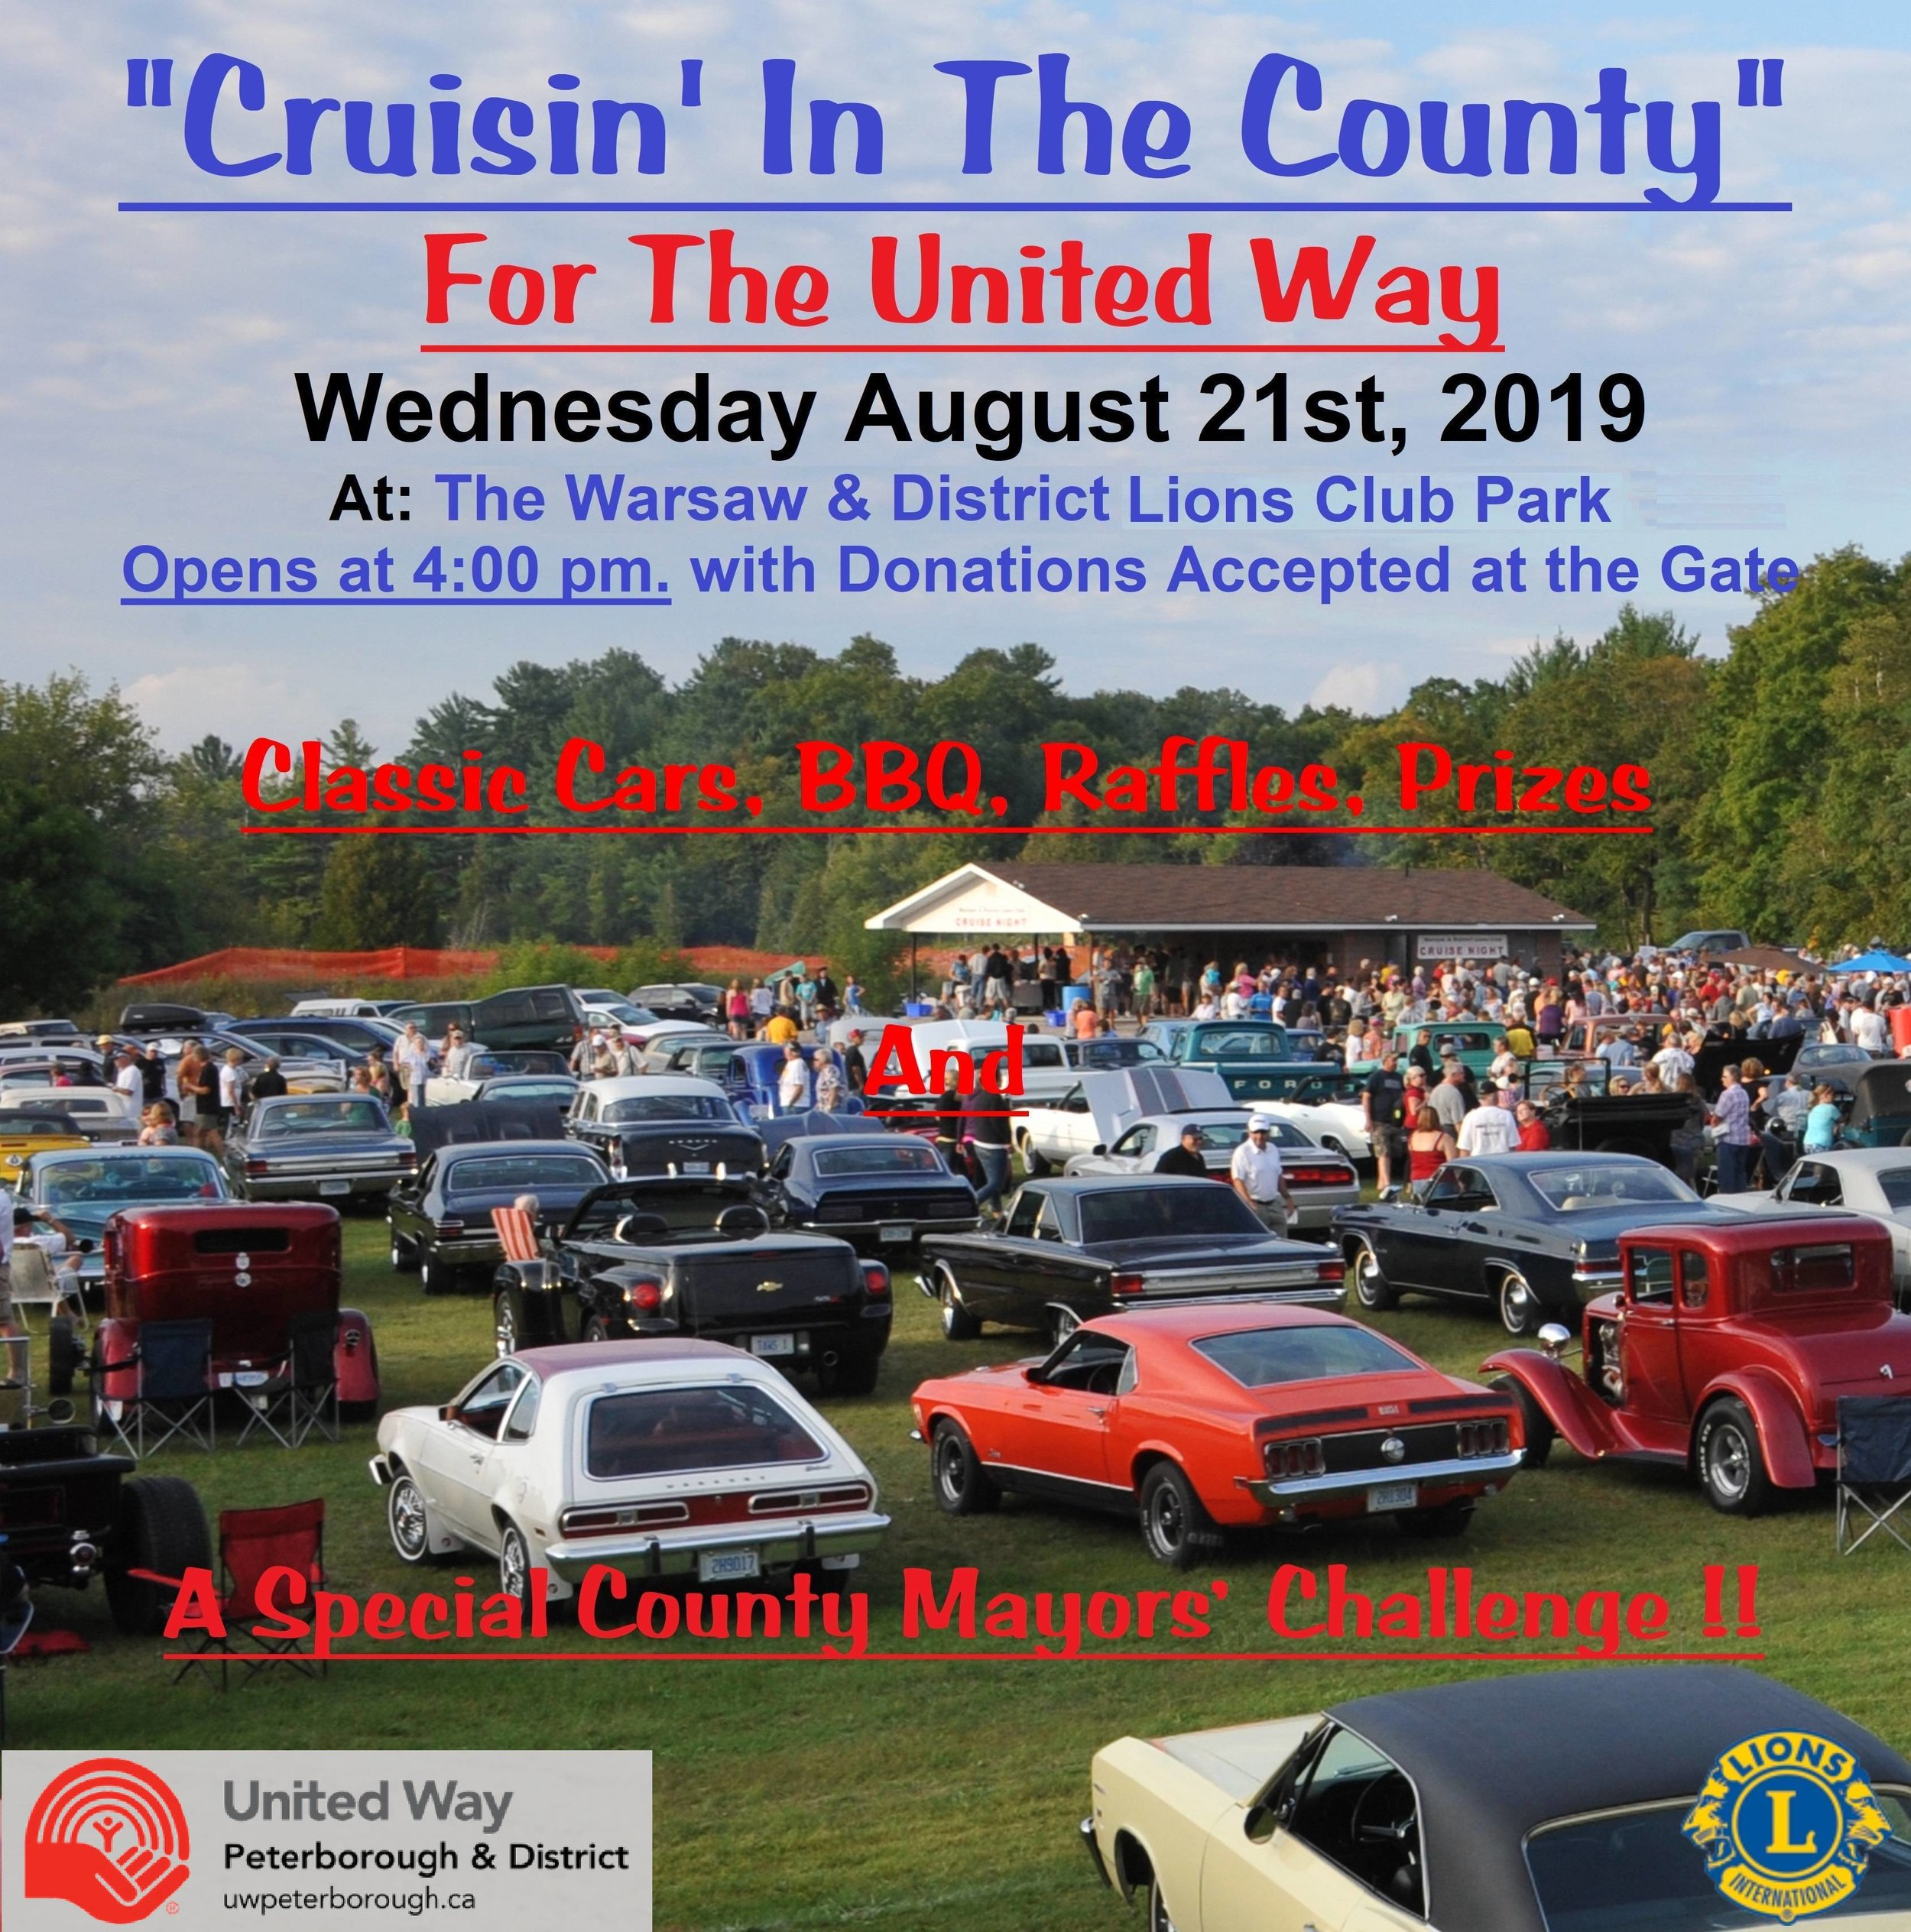 County Cruise Flyer.jpg